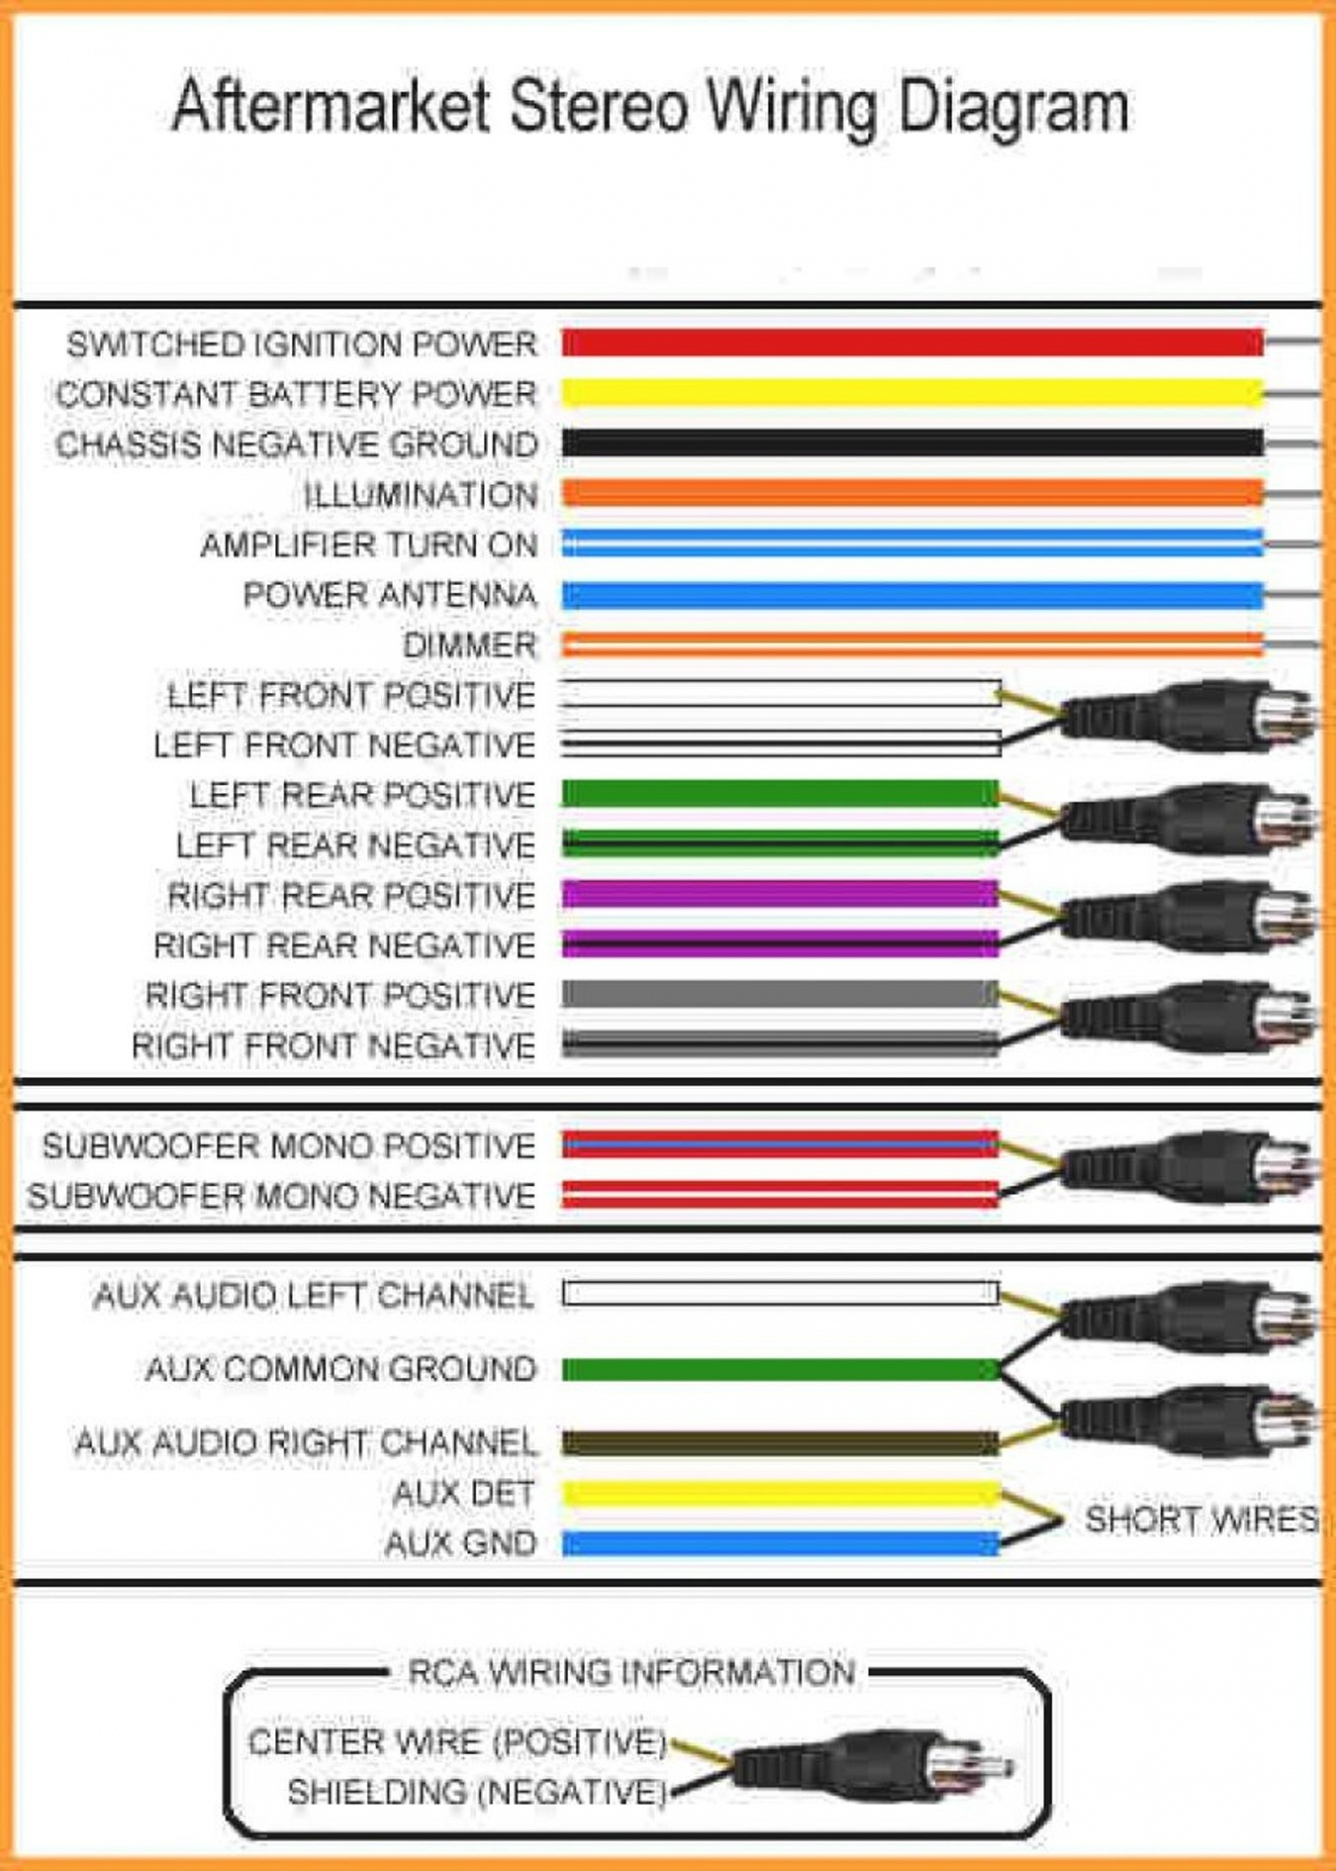 Old Car Stereo Wiring Diagram Colors - Wiring Diagram Expert Old Battery Radio Wiring Diagrams on battery schematic diagram, earth battery diagram, battery gauge wiring, dual battery diagram, 12v battery diagram, ignition diagram, motorhome battery diagram, how does a battery work diagram, battery parts diagram, johnson 9.9 parts diagram, battery wiring chart, battery generator diagram, a simple battery circuit diagram, battery switch diagram, battery to starter diagram, 12 volt 4 battery diagram, battery charger circuit diagram, battery system diagram, battery cables diagram, battery for wind turbine,